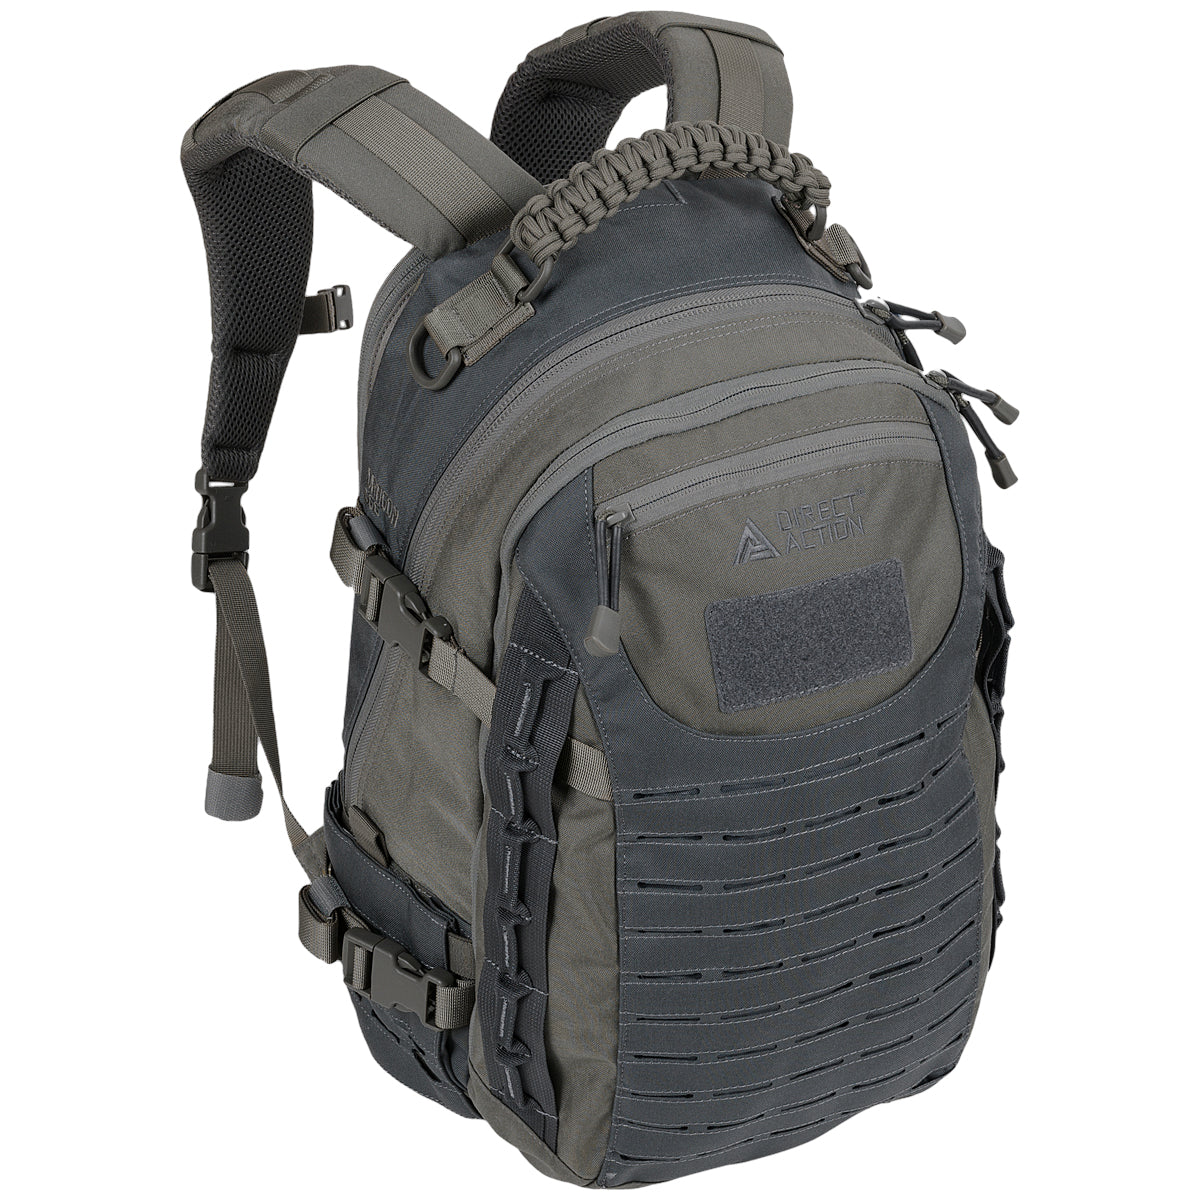 d656646a2c4bb DIRECT ACTION DRAGON EGG MKII BACKPACK - URBAN GREY SHADOW GREY ...